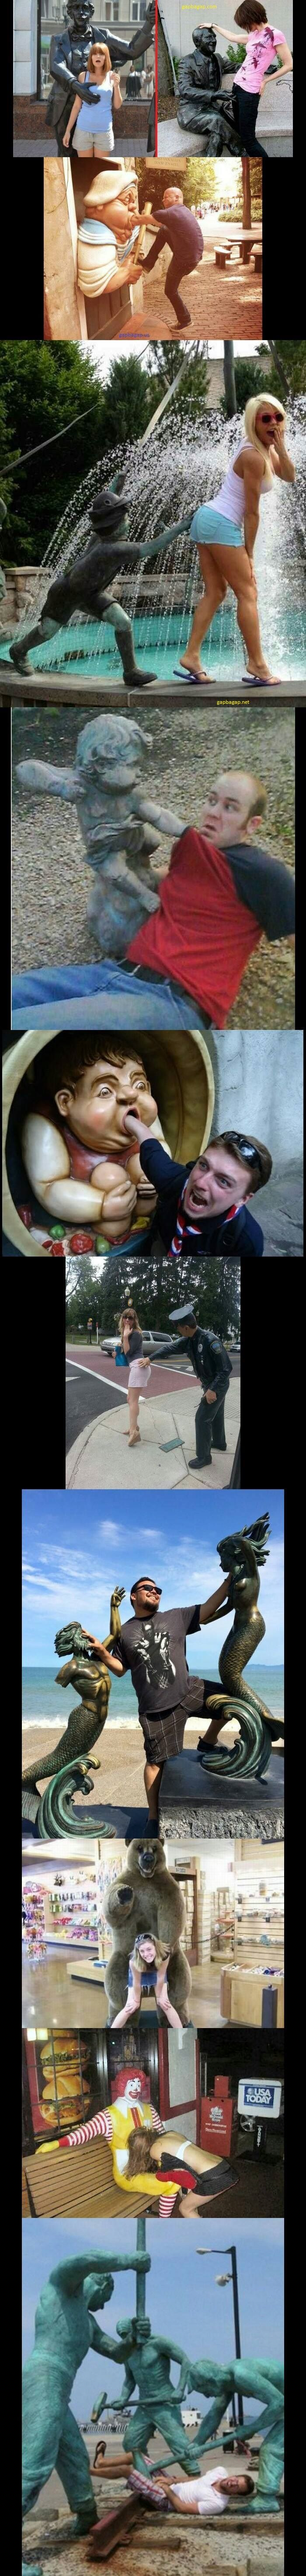 Top 10 Funny Pictures Of People Having Fun With Statues